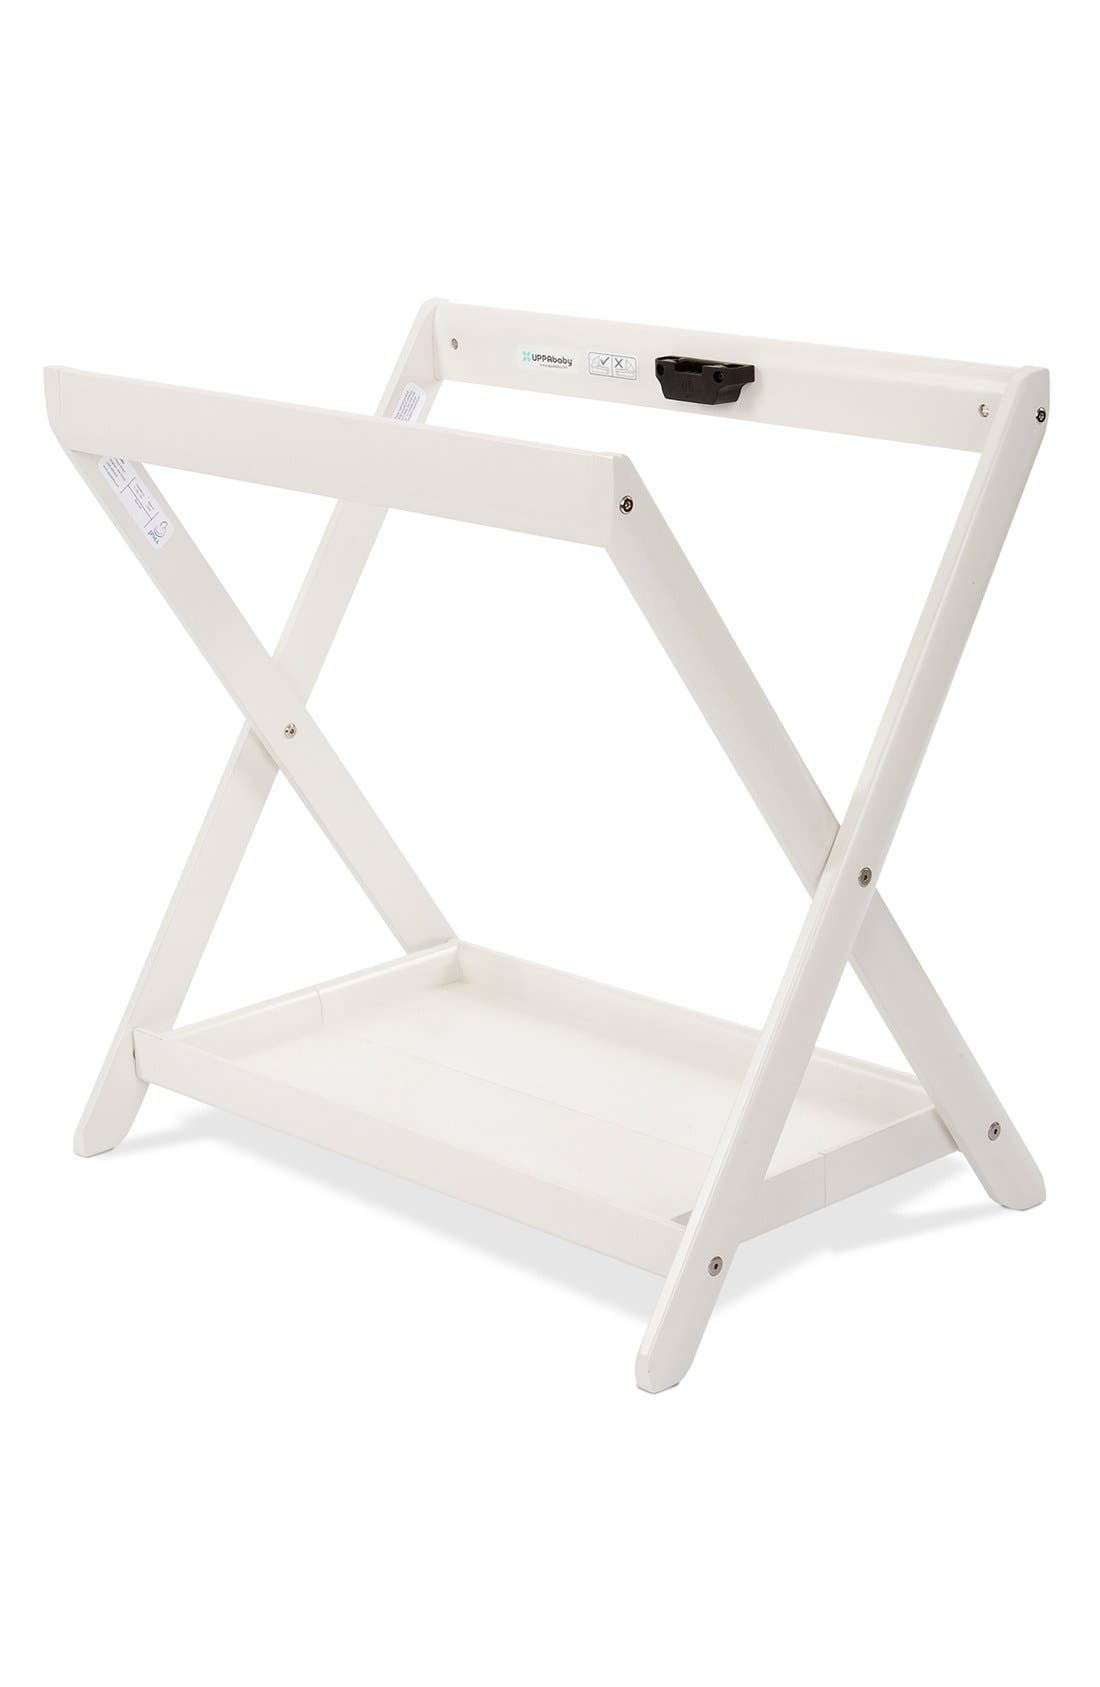 Alternate Image 1 Selected - UPPAbaby VISTA Bassinet Stand